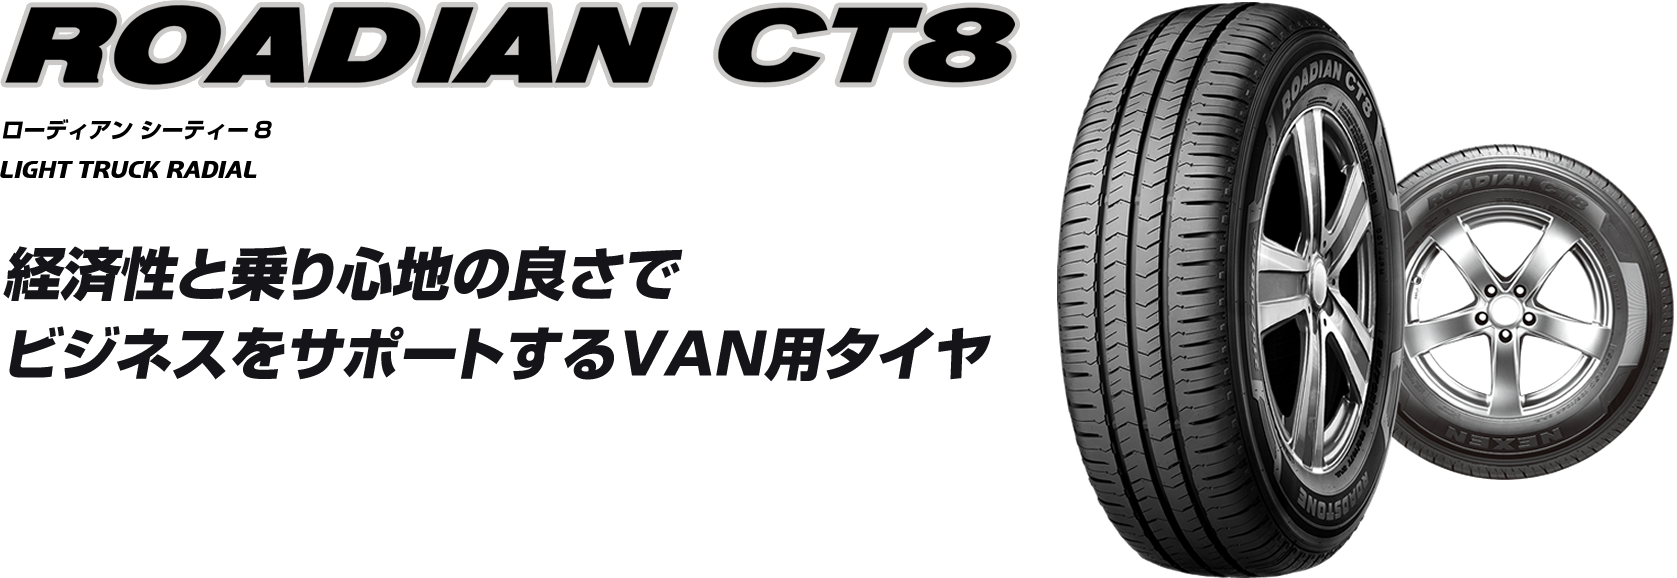 ROADIAN CT8